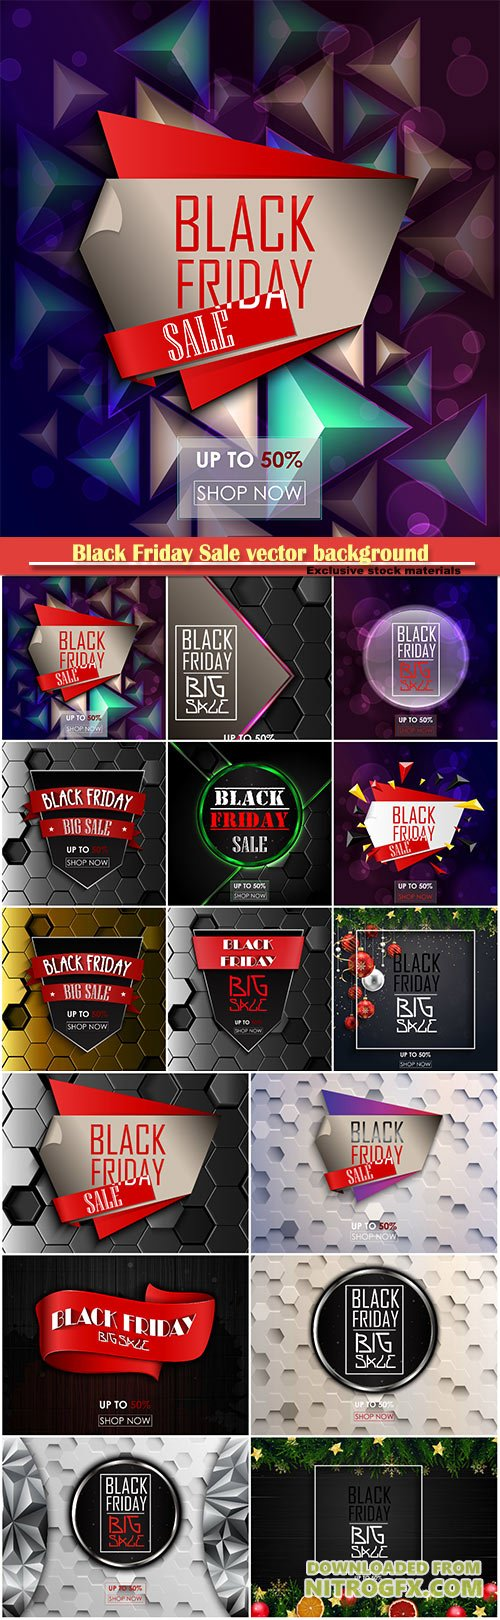 Black Friday Sale vector background, shopping offer and promotion